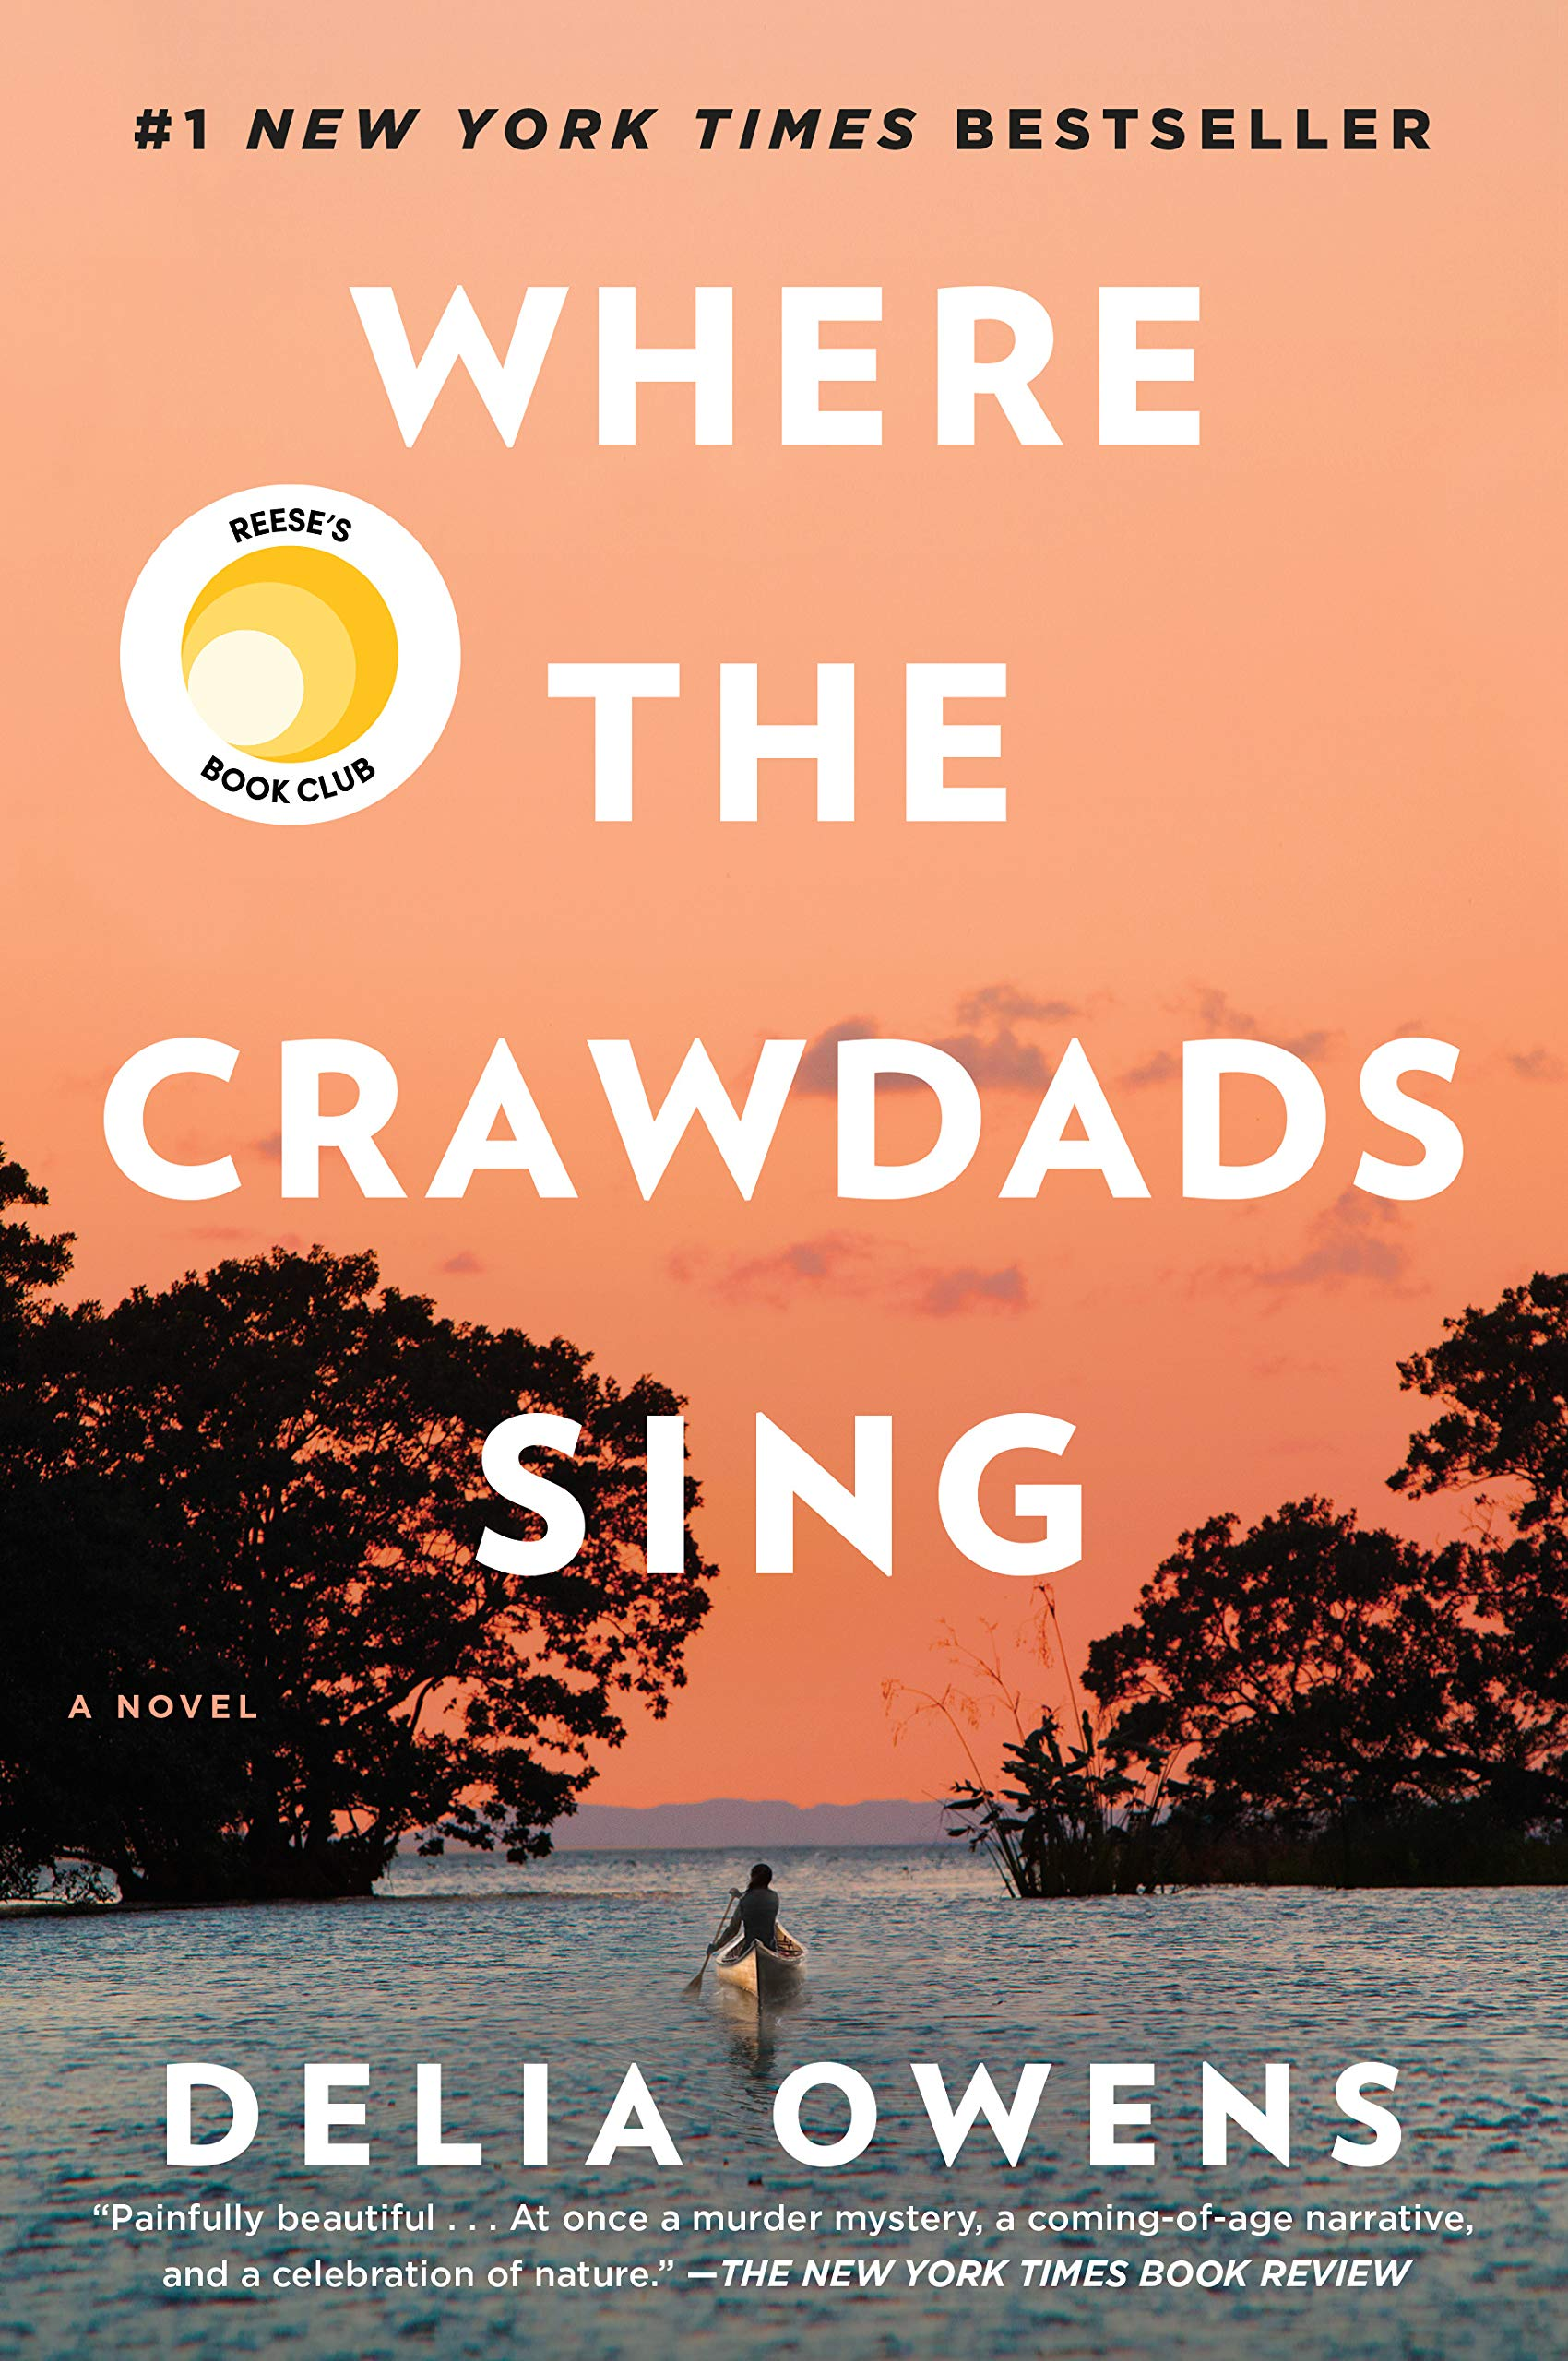 Apple Books Bestsellers: 'Crawdads' Won't Stop Singing